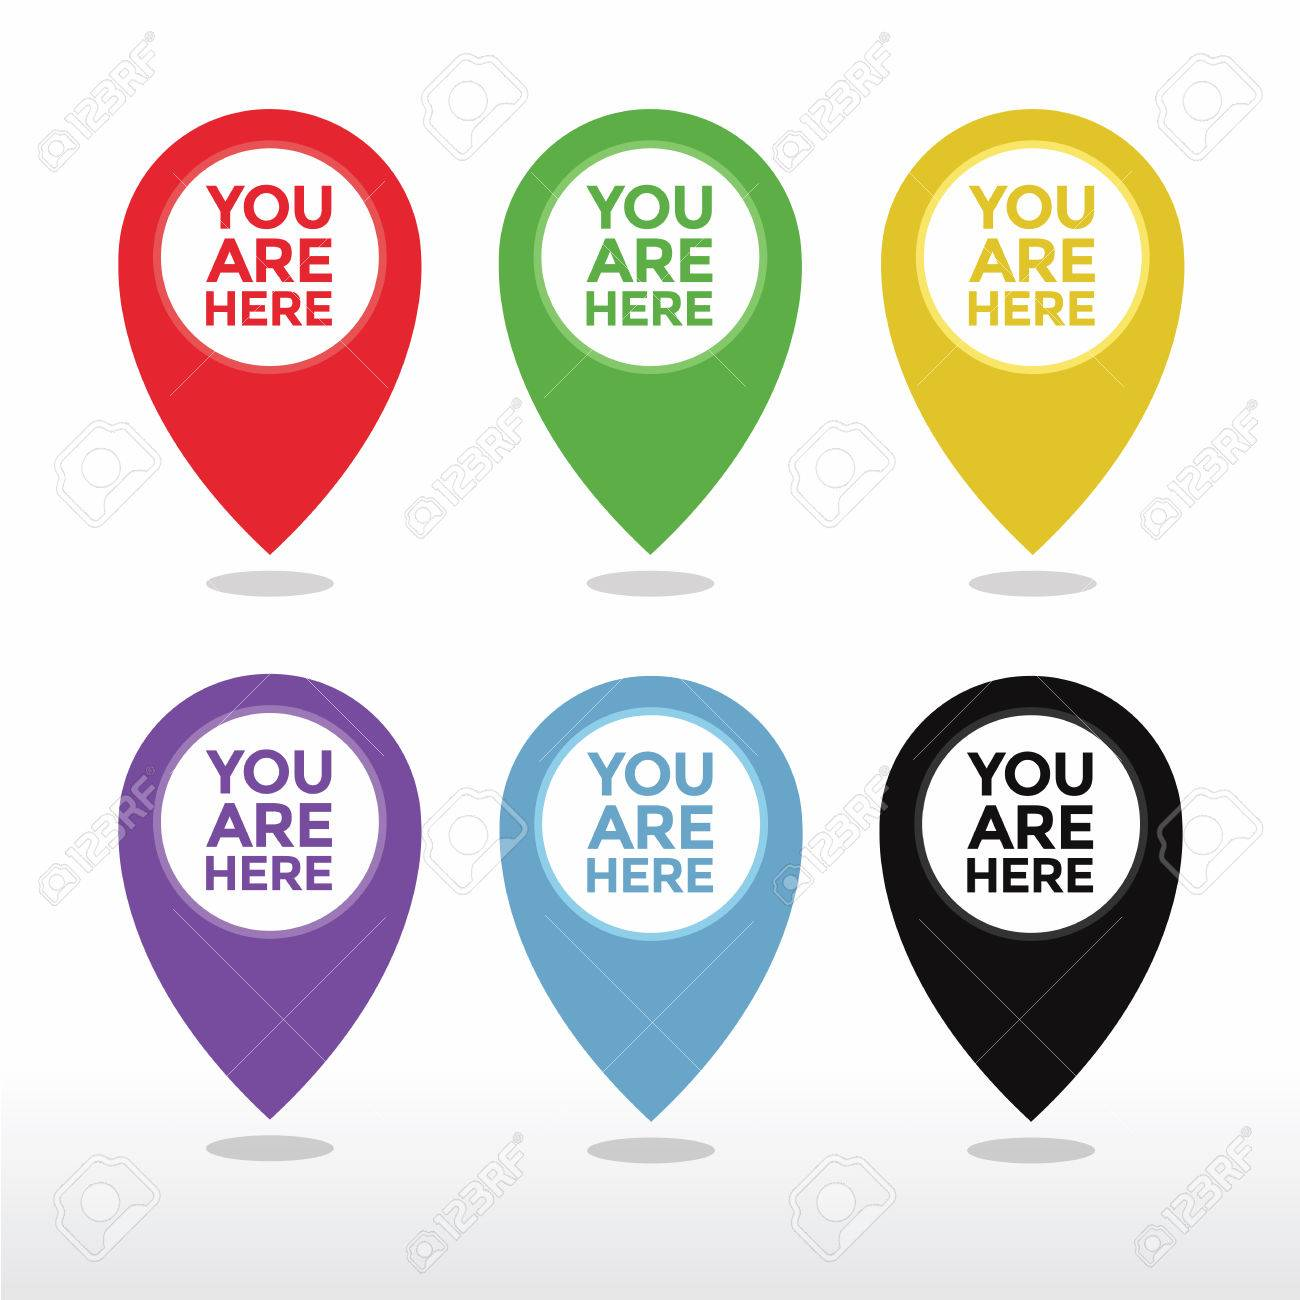 You are here map pointer icon vector - 53893024